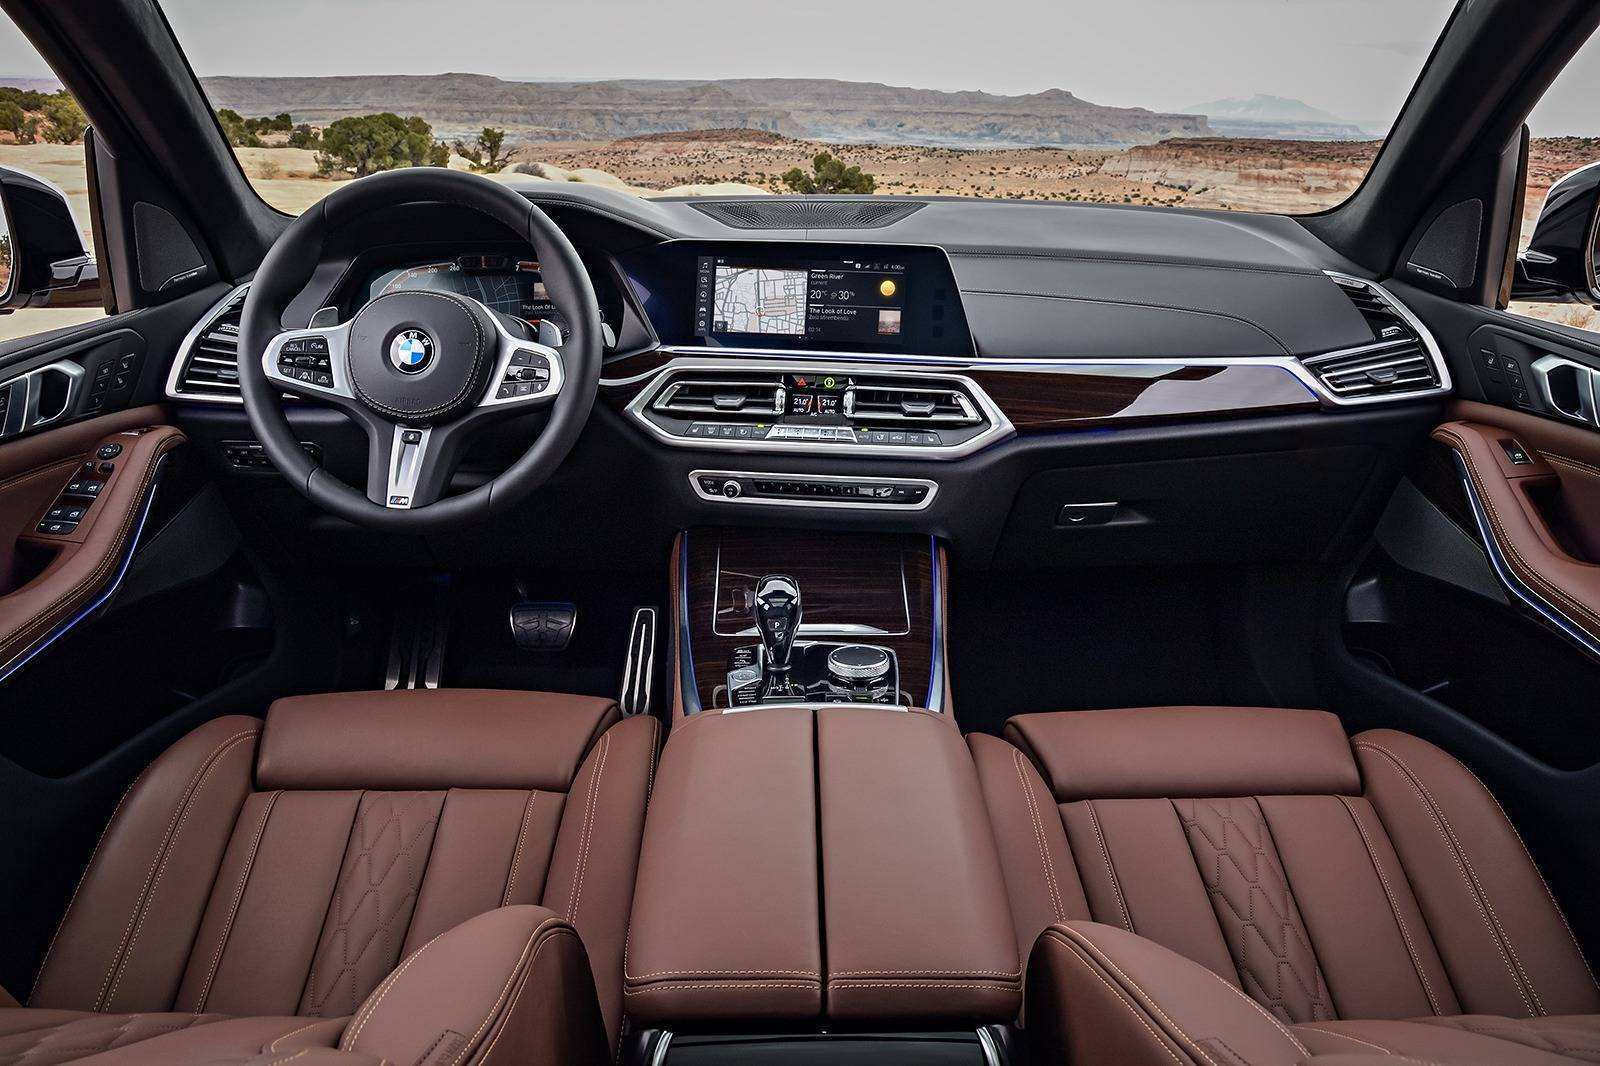 78 Best Review The Bmw X5 2019 Launch Date Release Date Exterior by The Bmw X5 2019 Launch Date Release Date